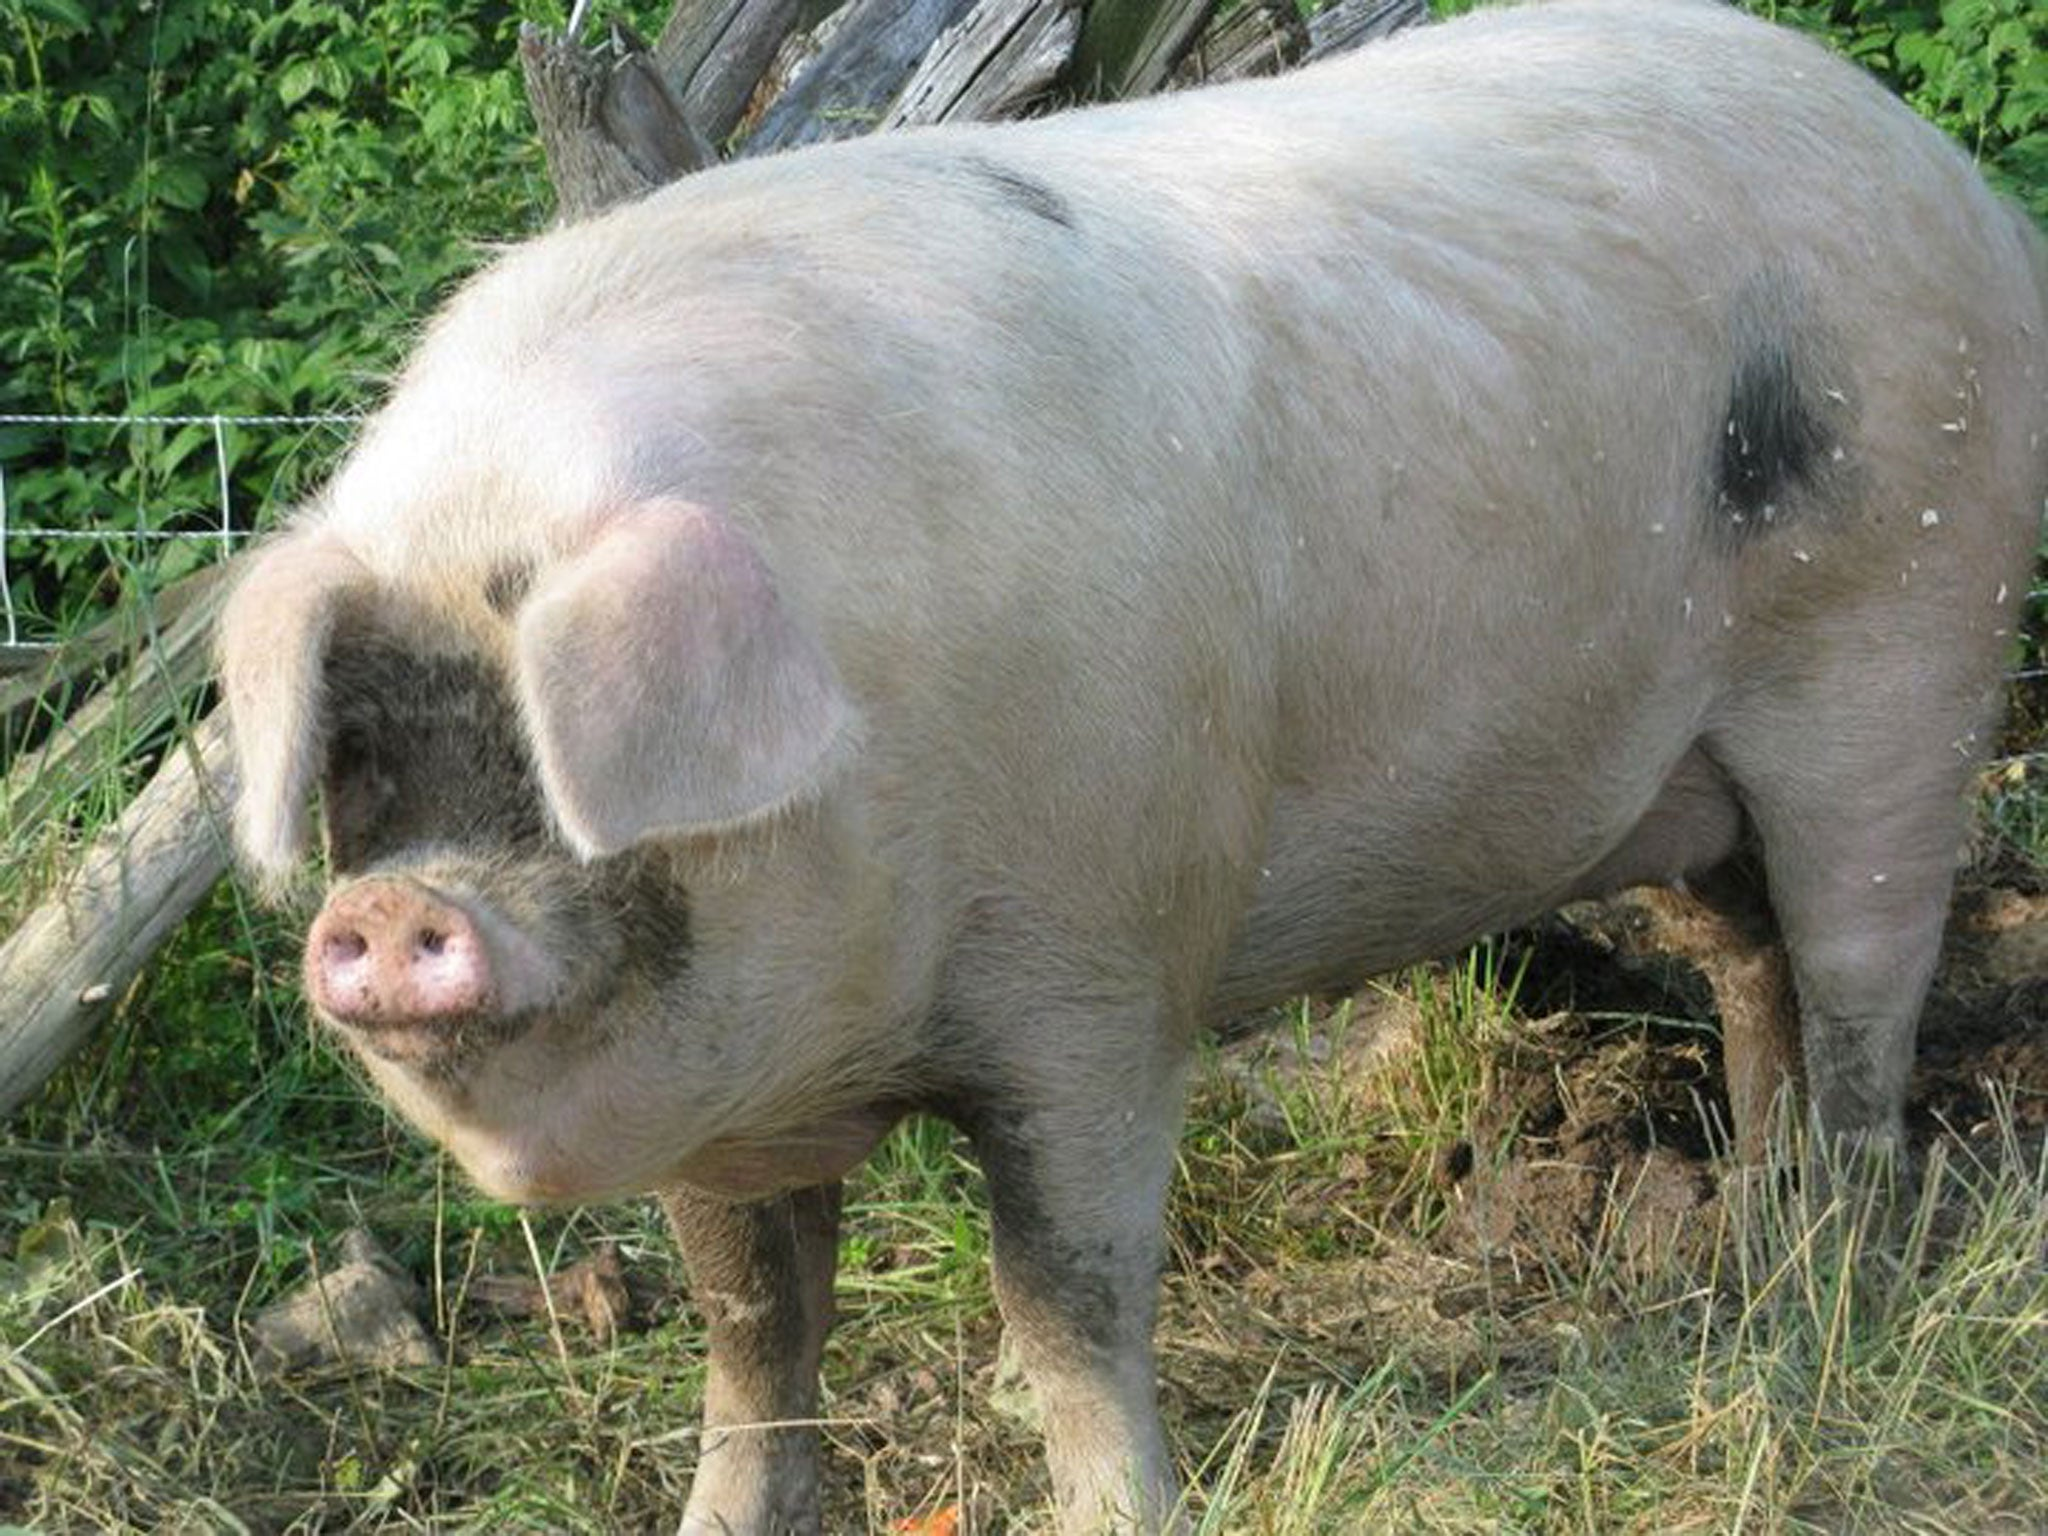 Giant Rampaging Pig Smashes Through Fence And Breaks A